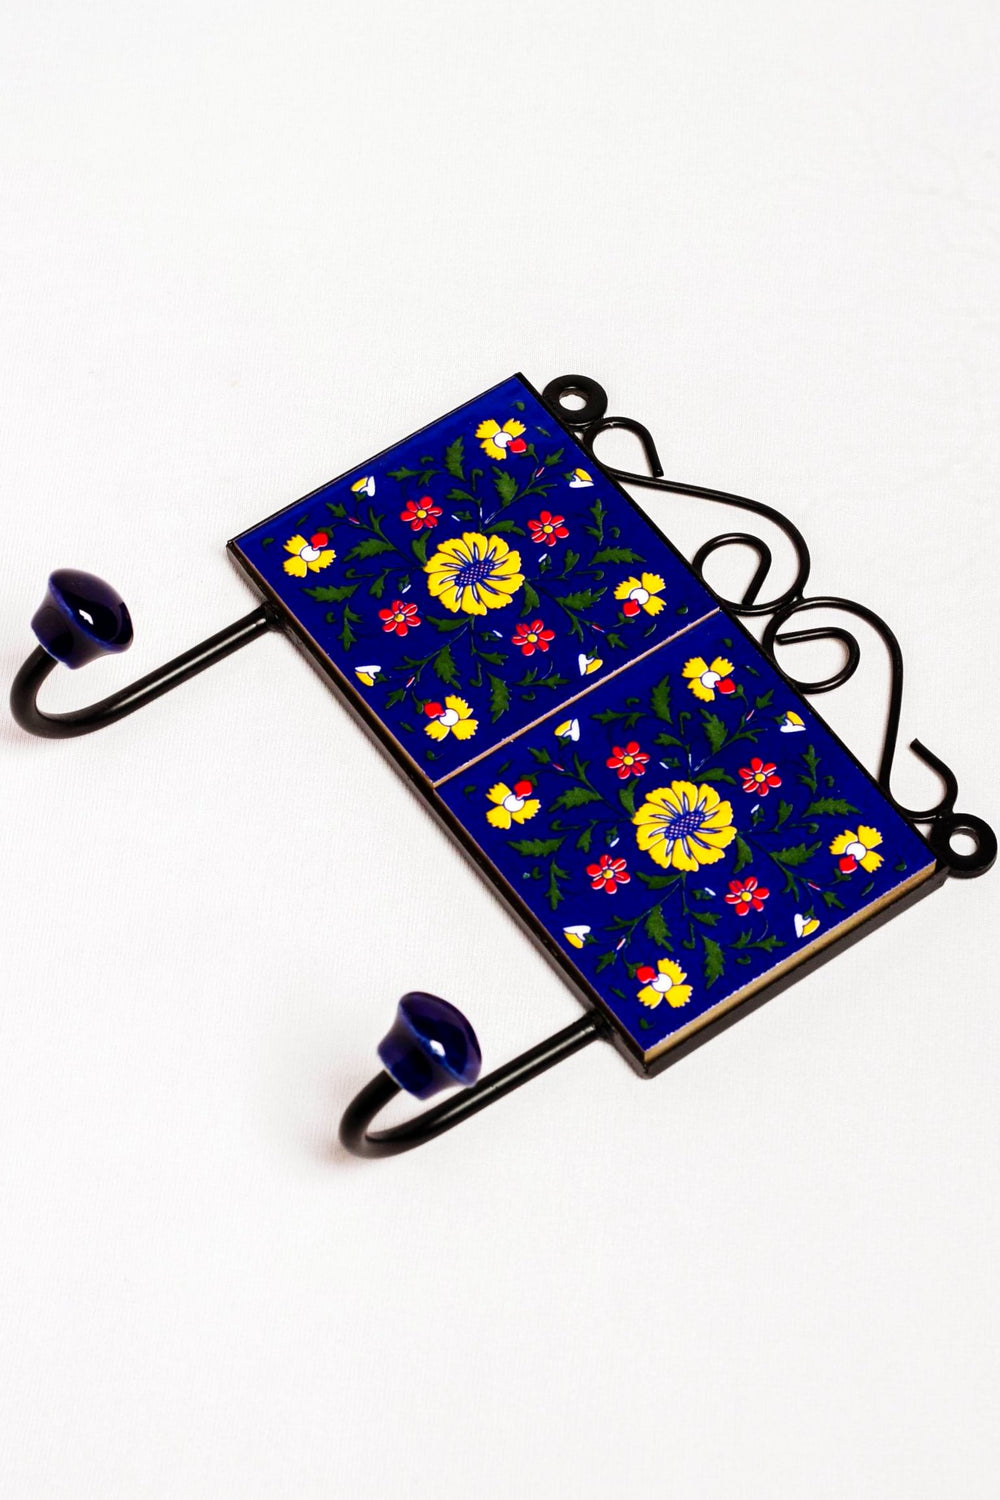 Metal and twin ceramic tile wall hook, blue with yellow and red floral motif